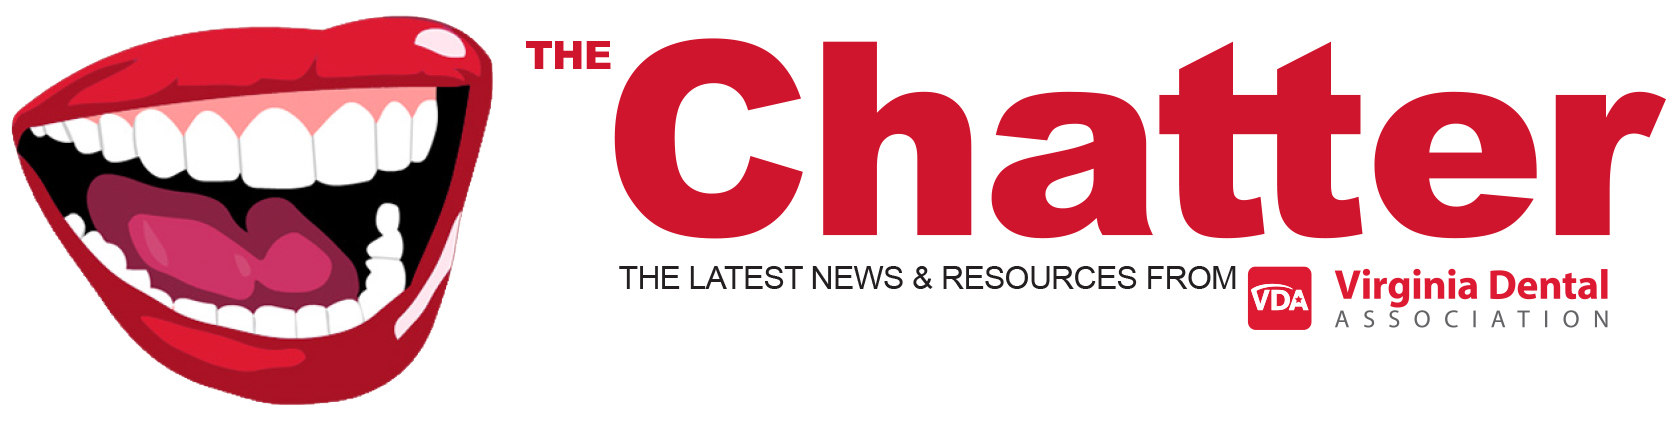 The Chatter Masthead